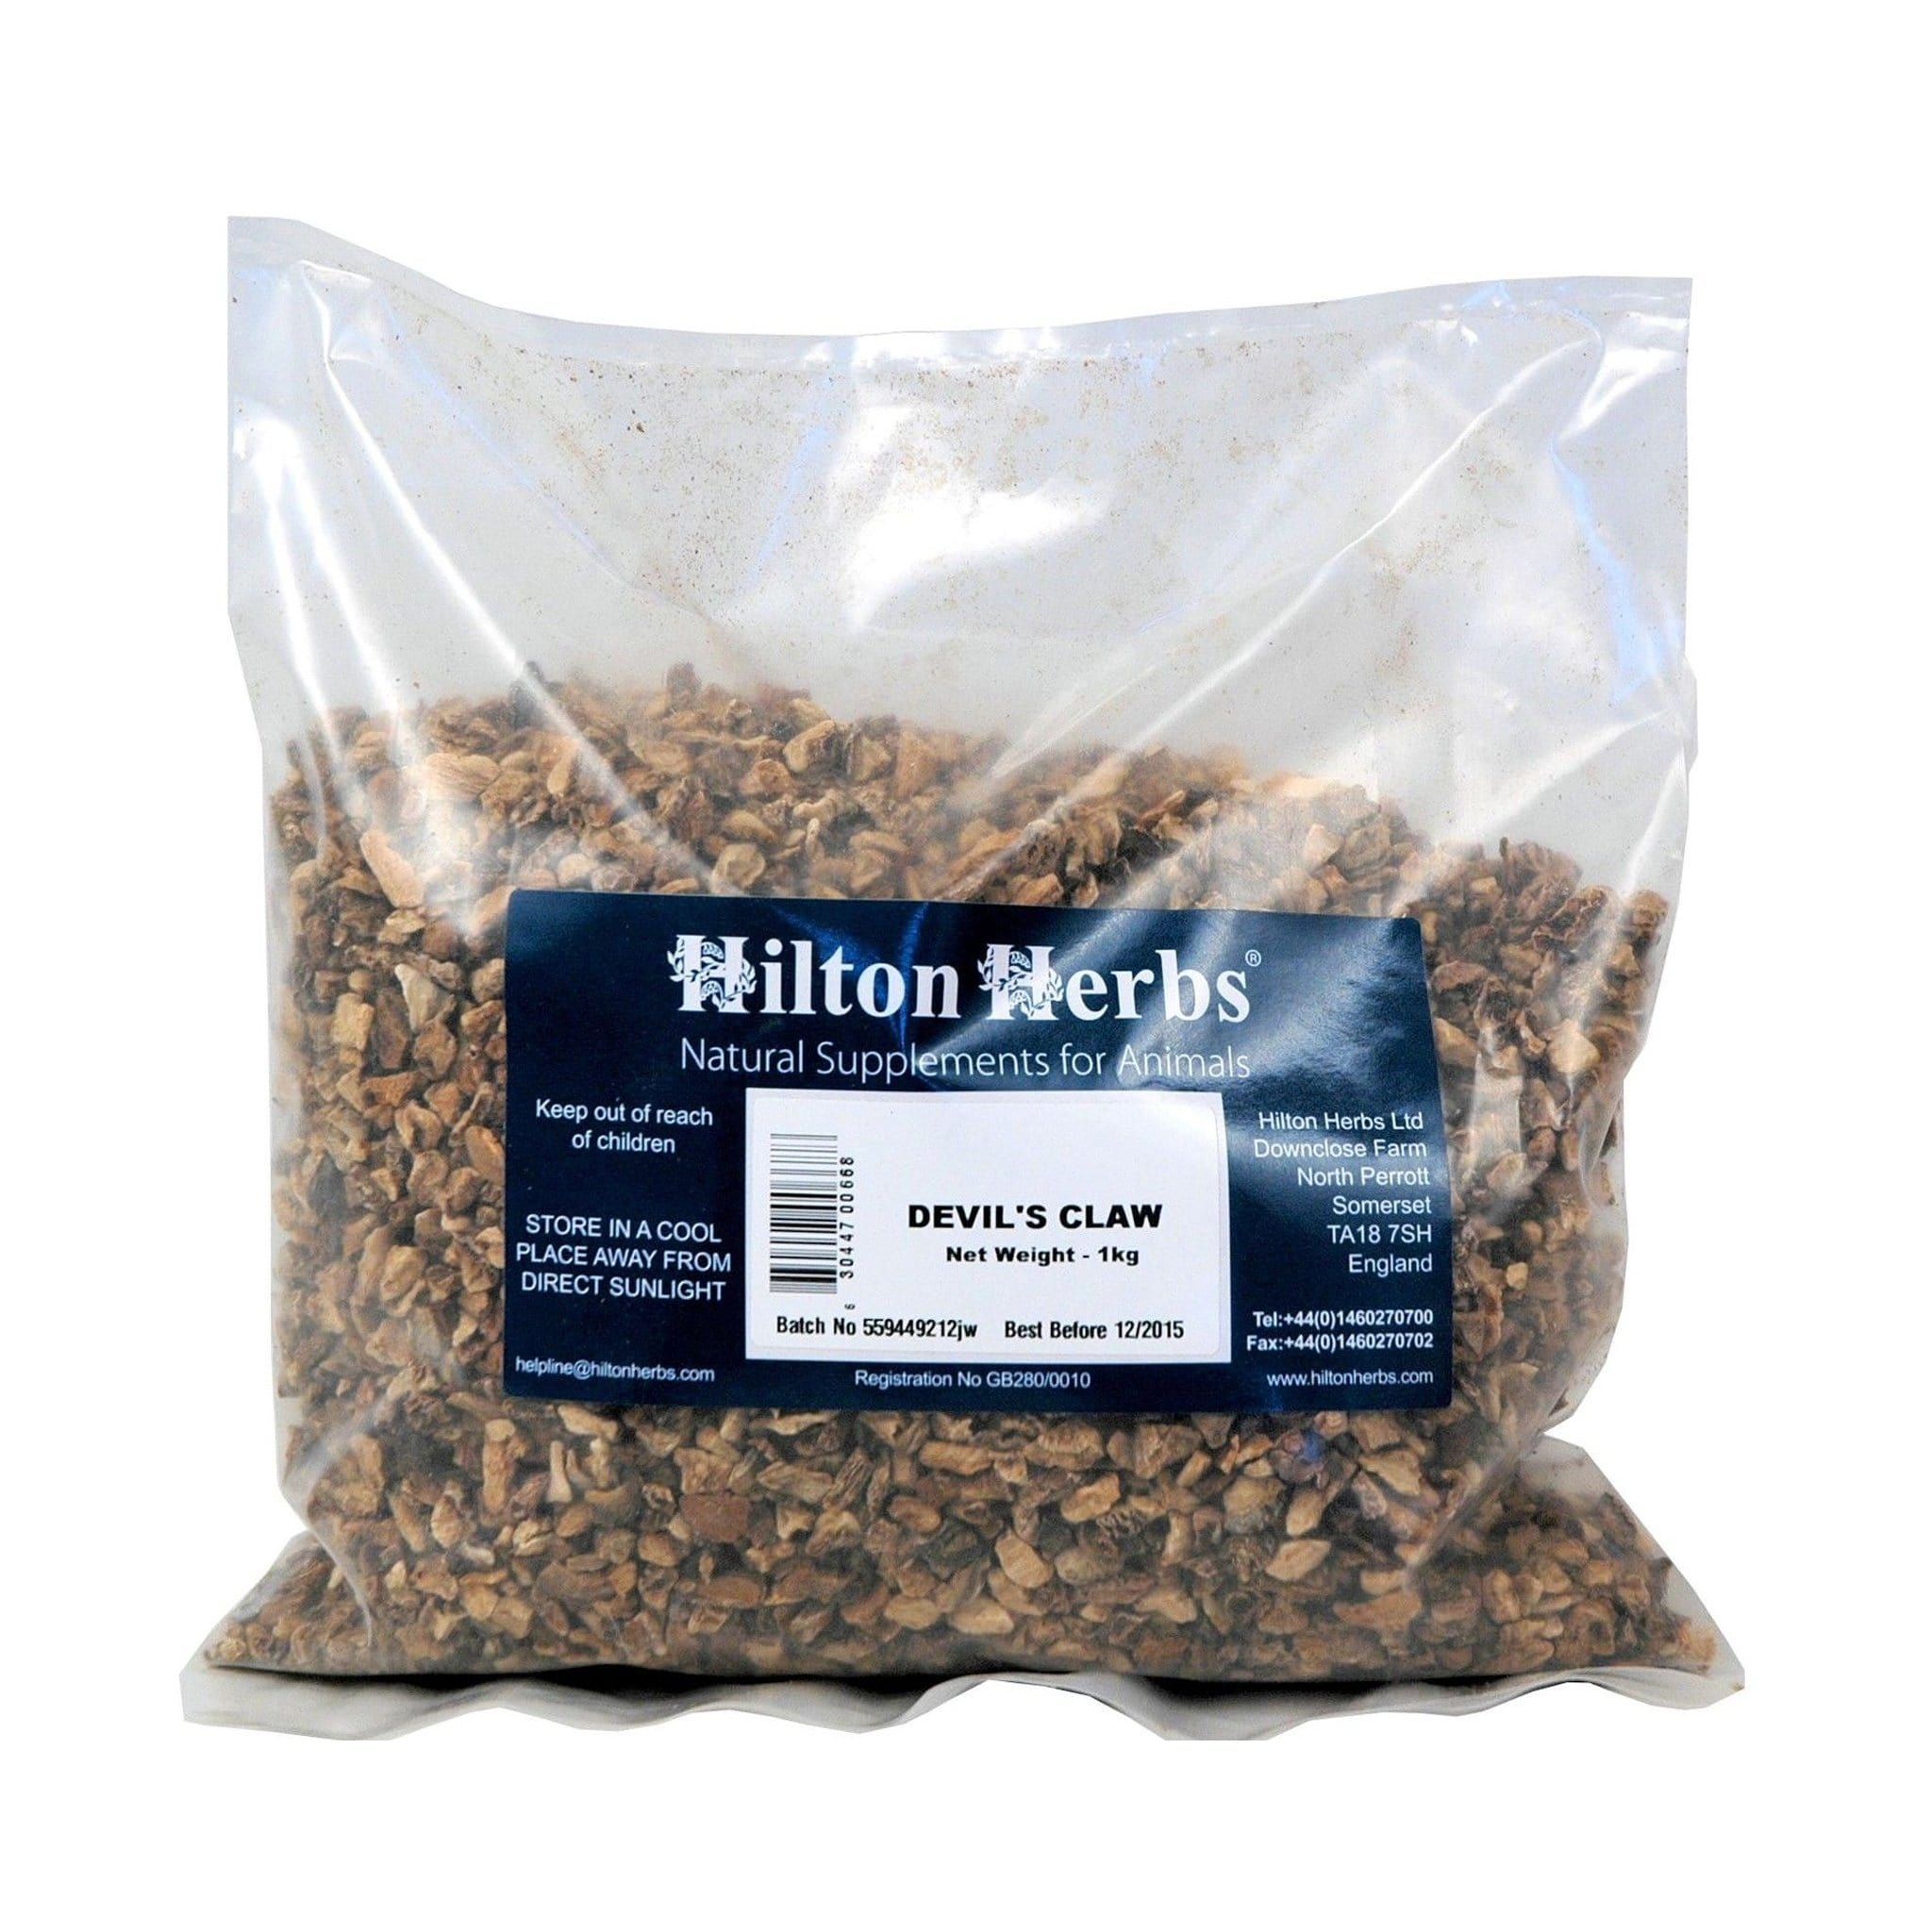 HHS0016 Hilton Herbs Devil's Claw Supplement